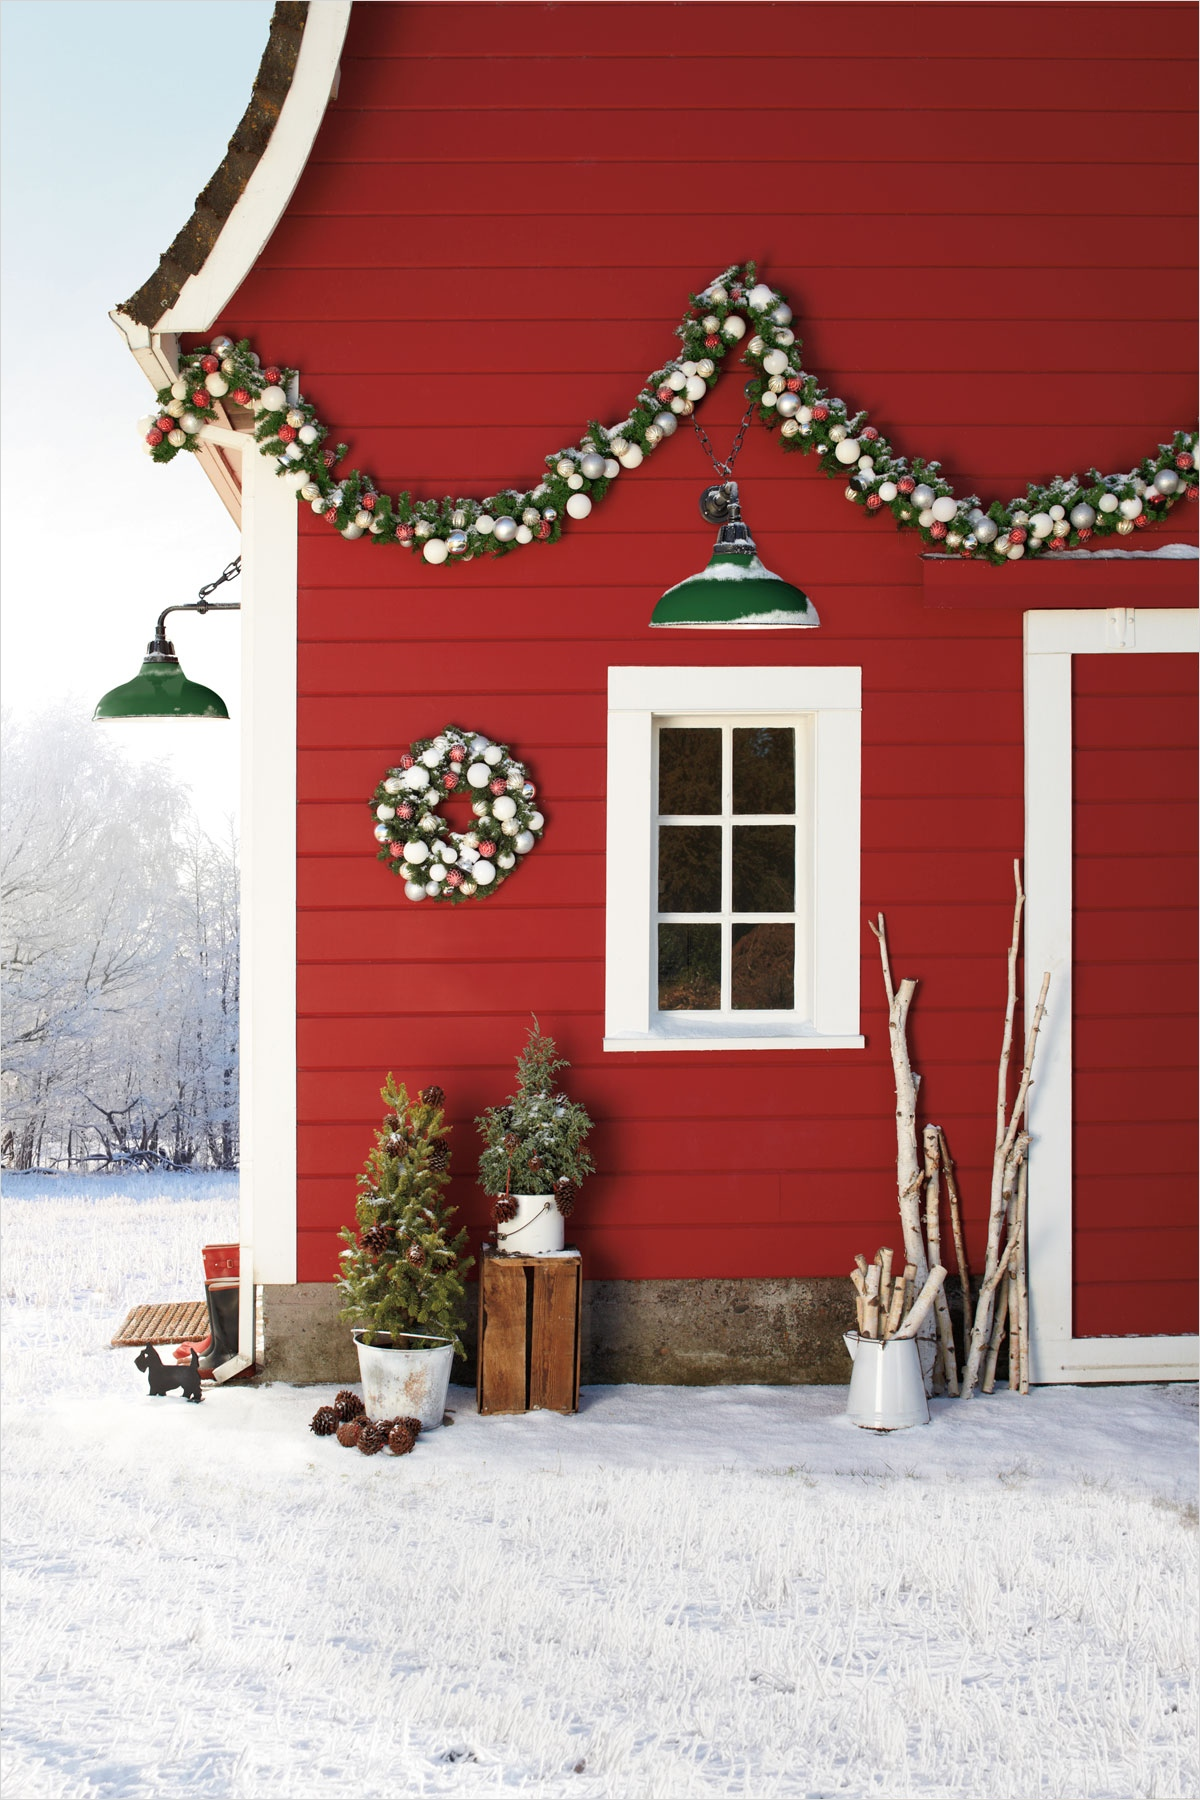 41 Amazing Country Christmas Decorating Ideas 99 36 Country Christmas Decorating Ideas How to Celebrate Christmas In the Country 7